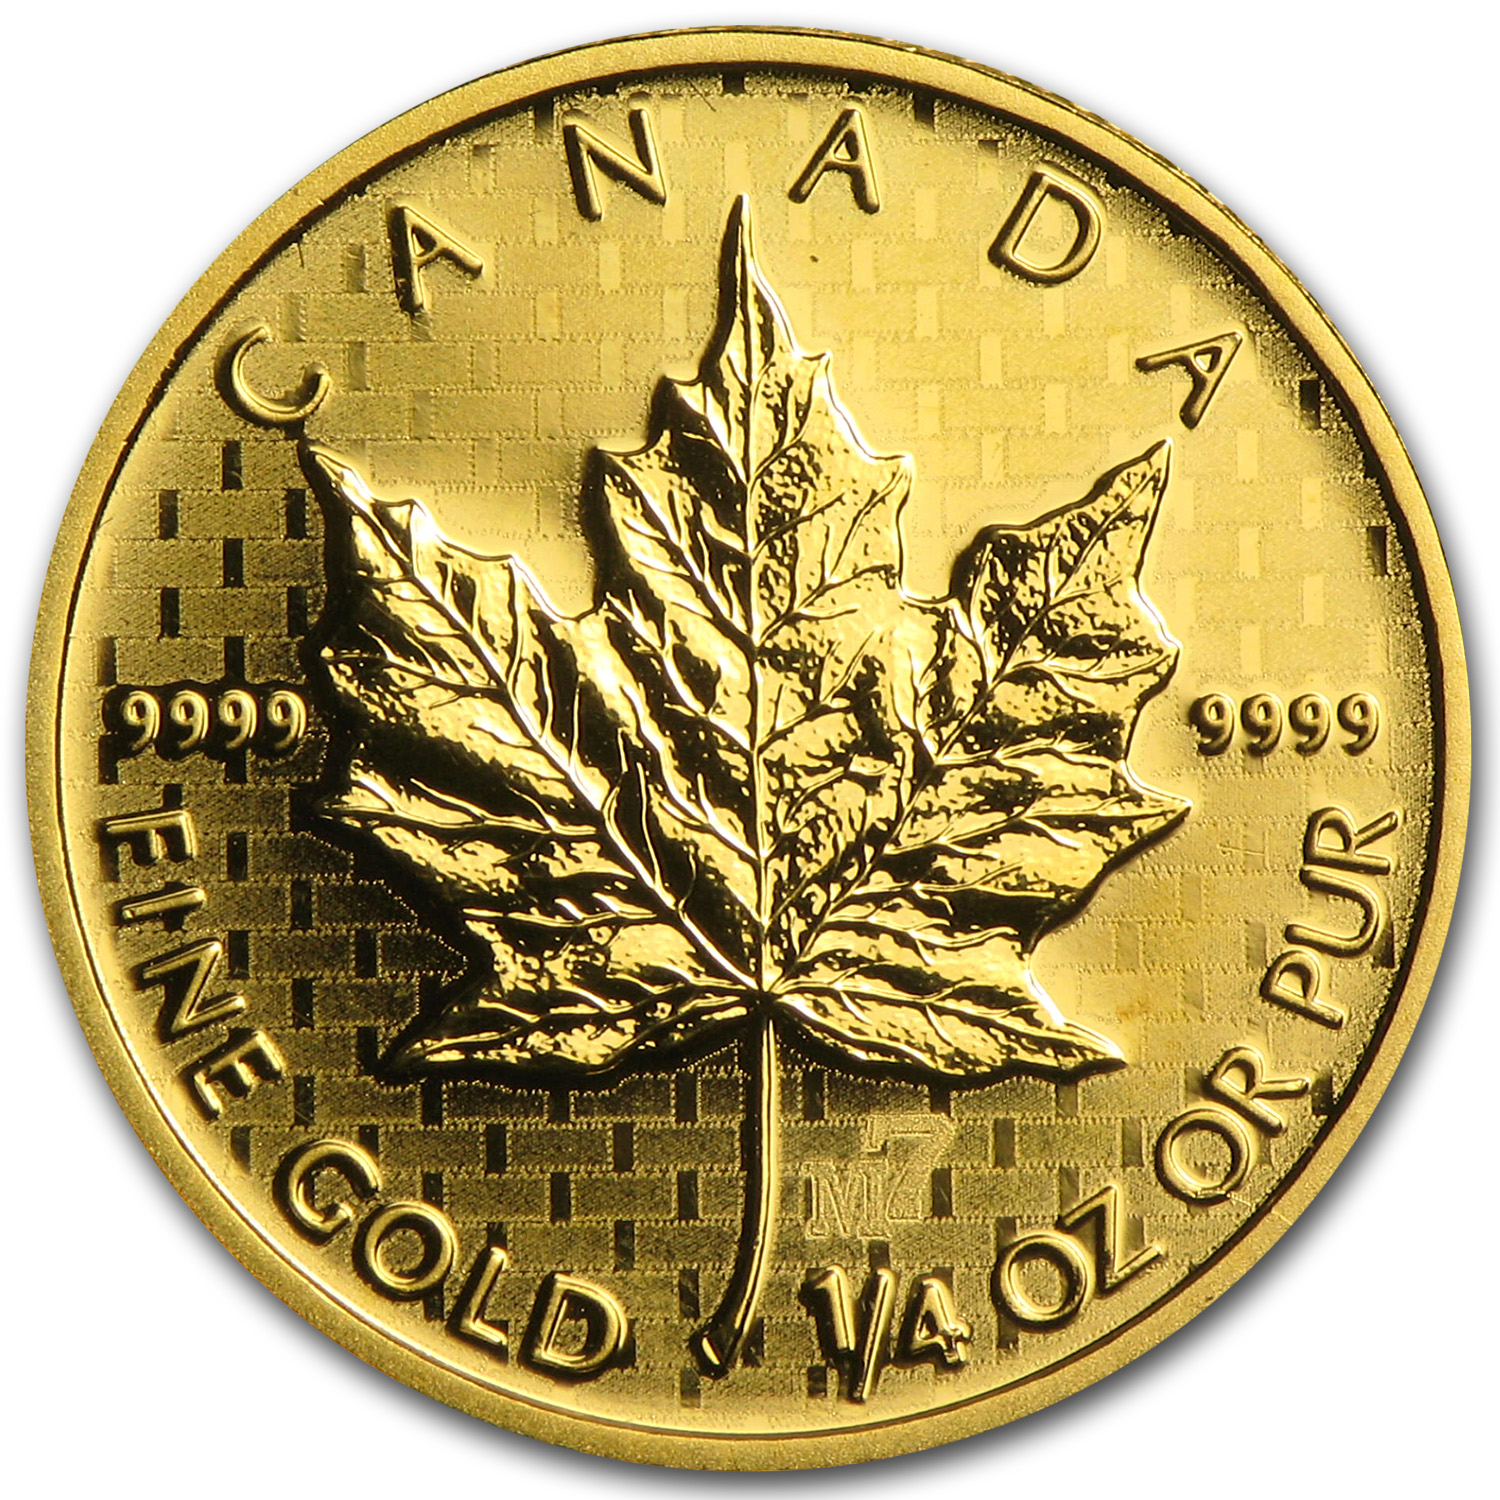 2005 Canada 1/4 oz Gold Maple Leaf BU (M7 Privy)